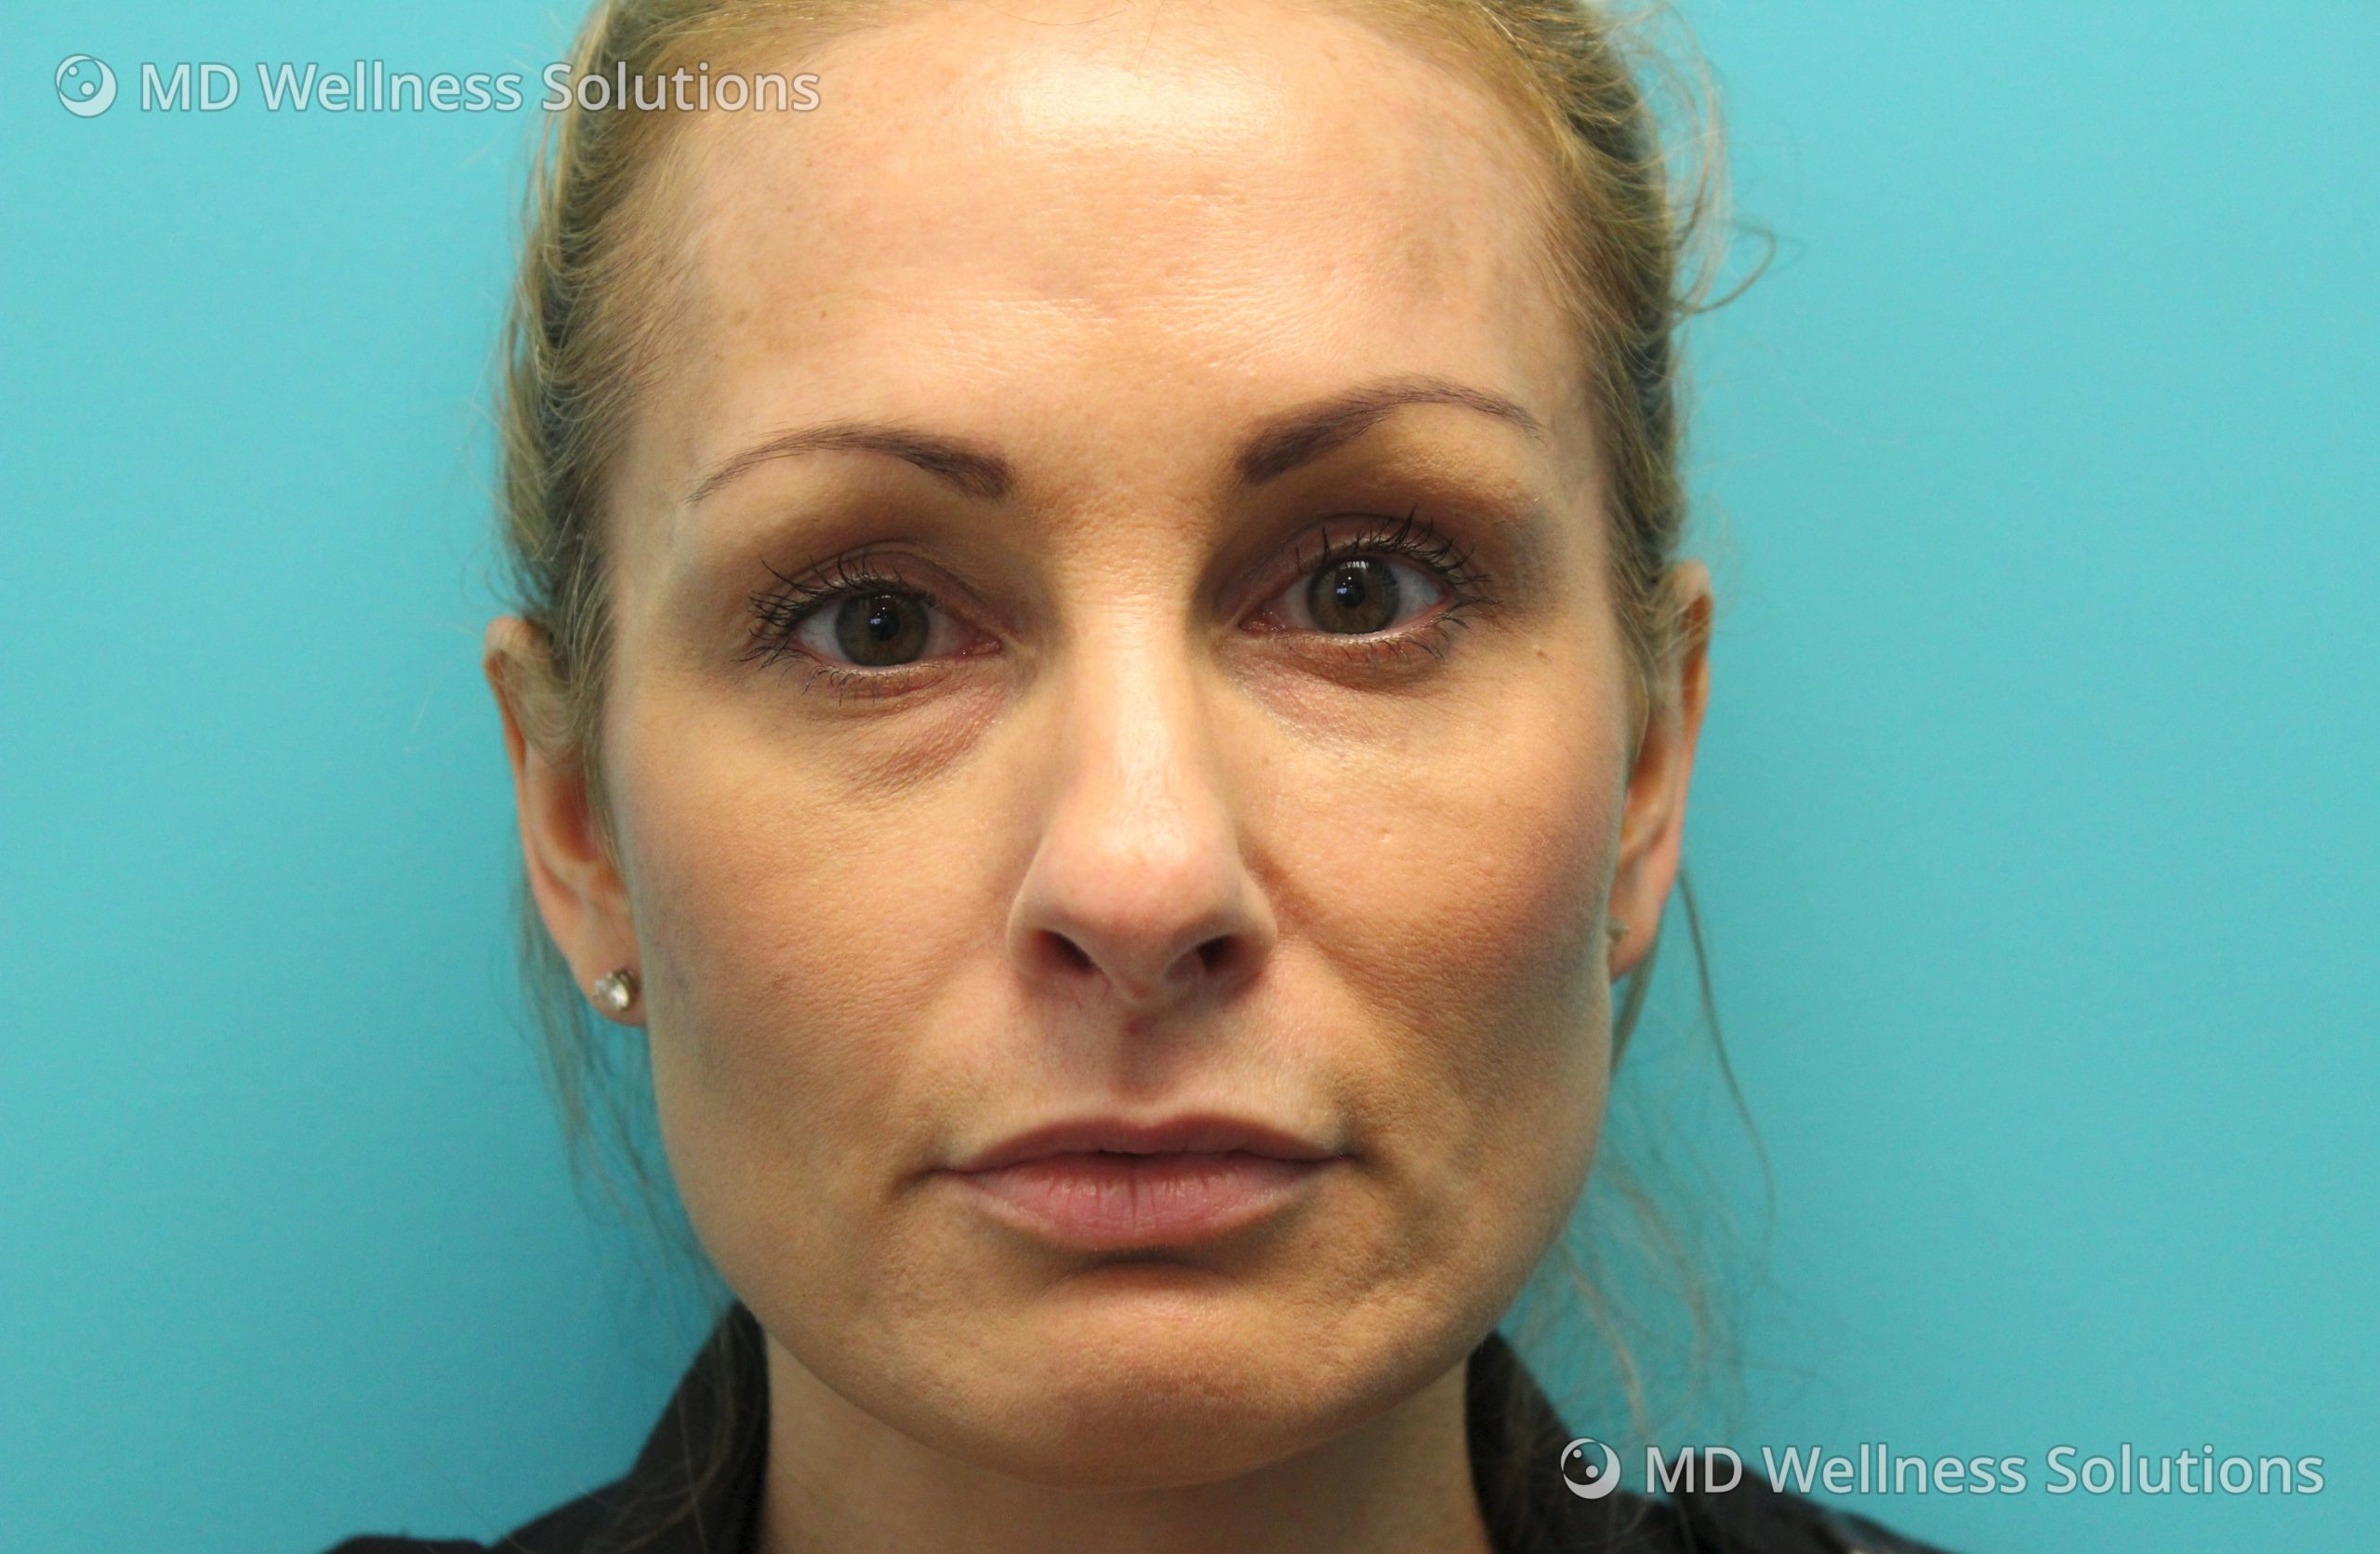 35-44 year old woman after dermal filler treatment